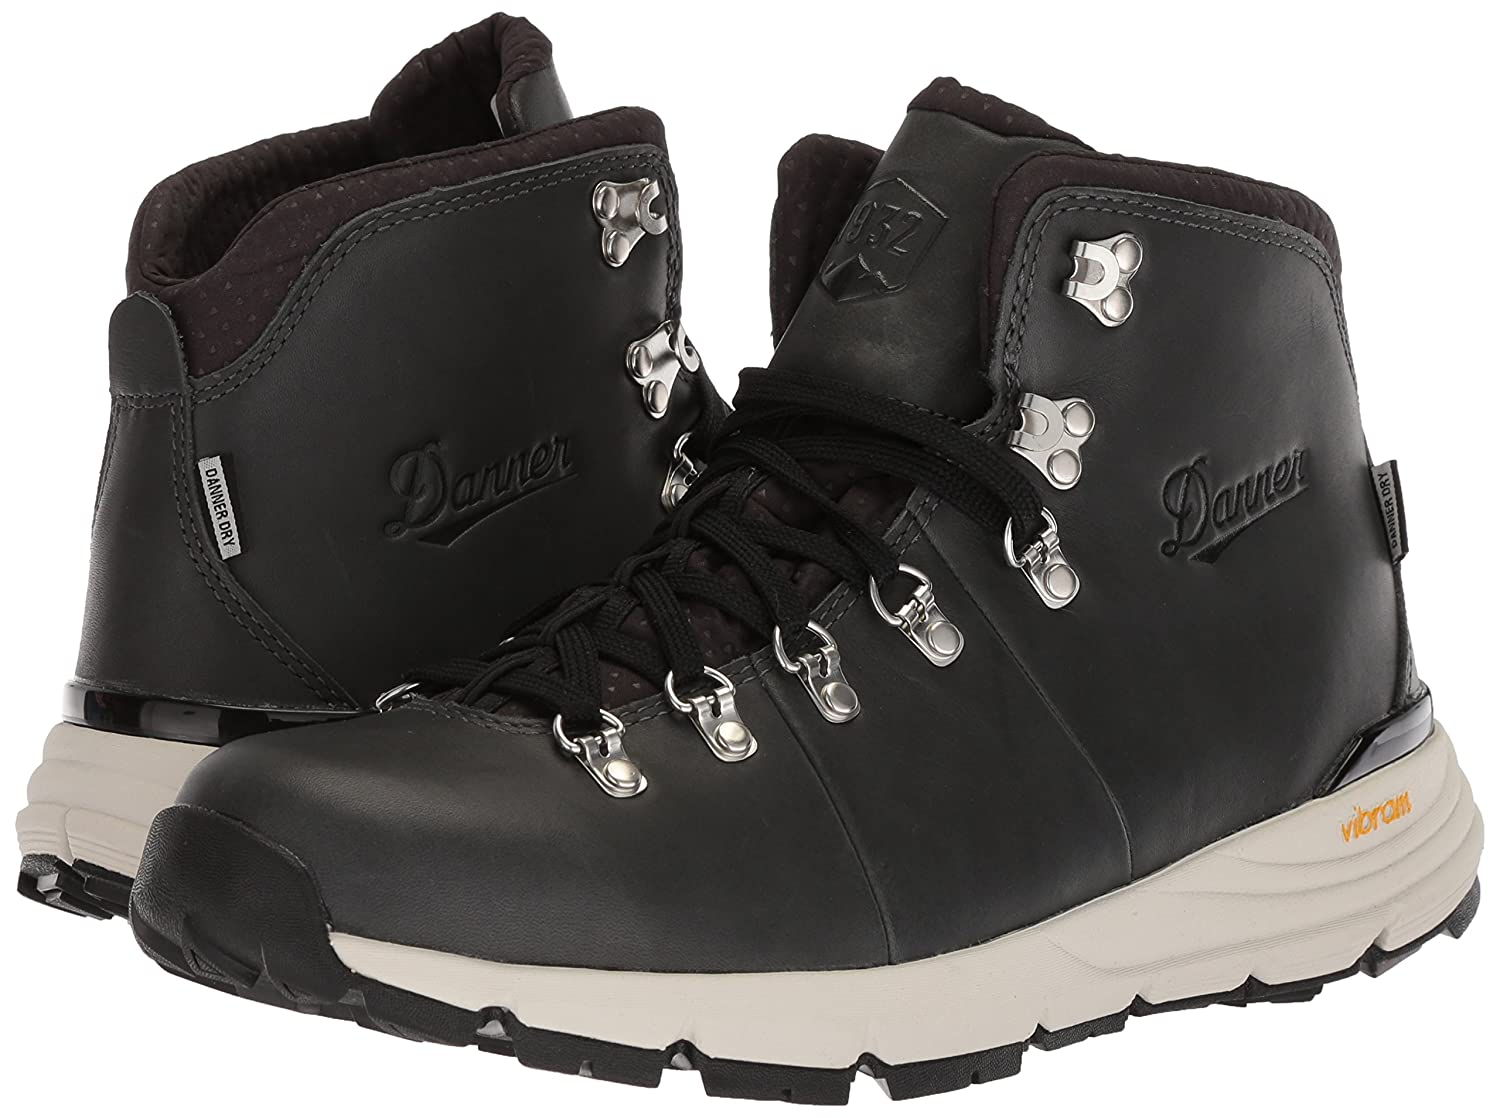 Danner Mens Mountain 600 4.5-Ms Hiking Boot Gray 10 D US